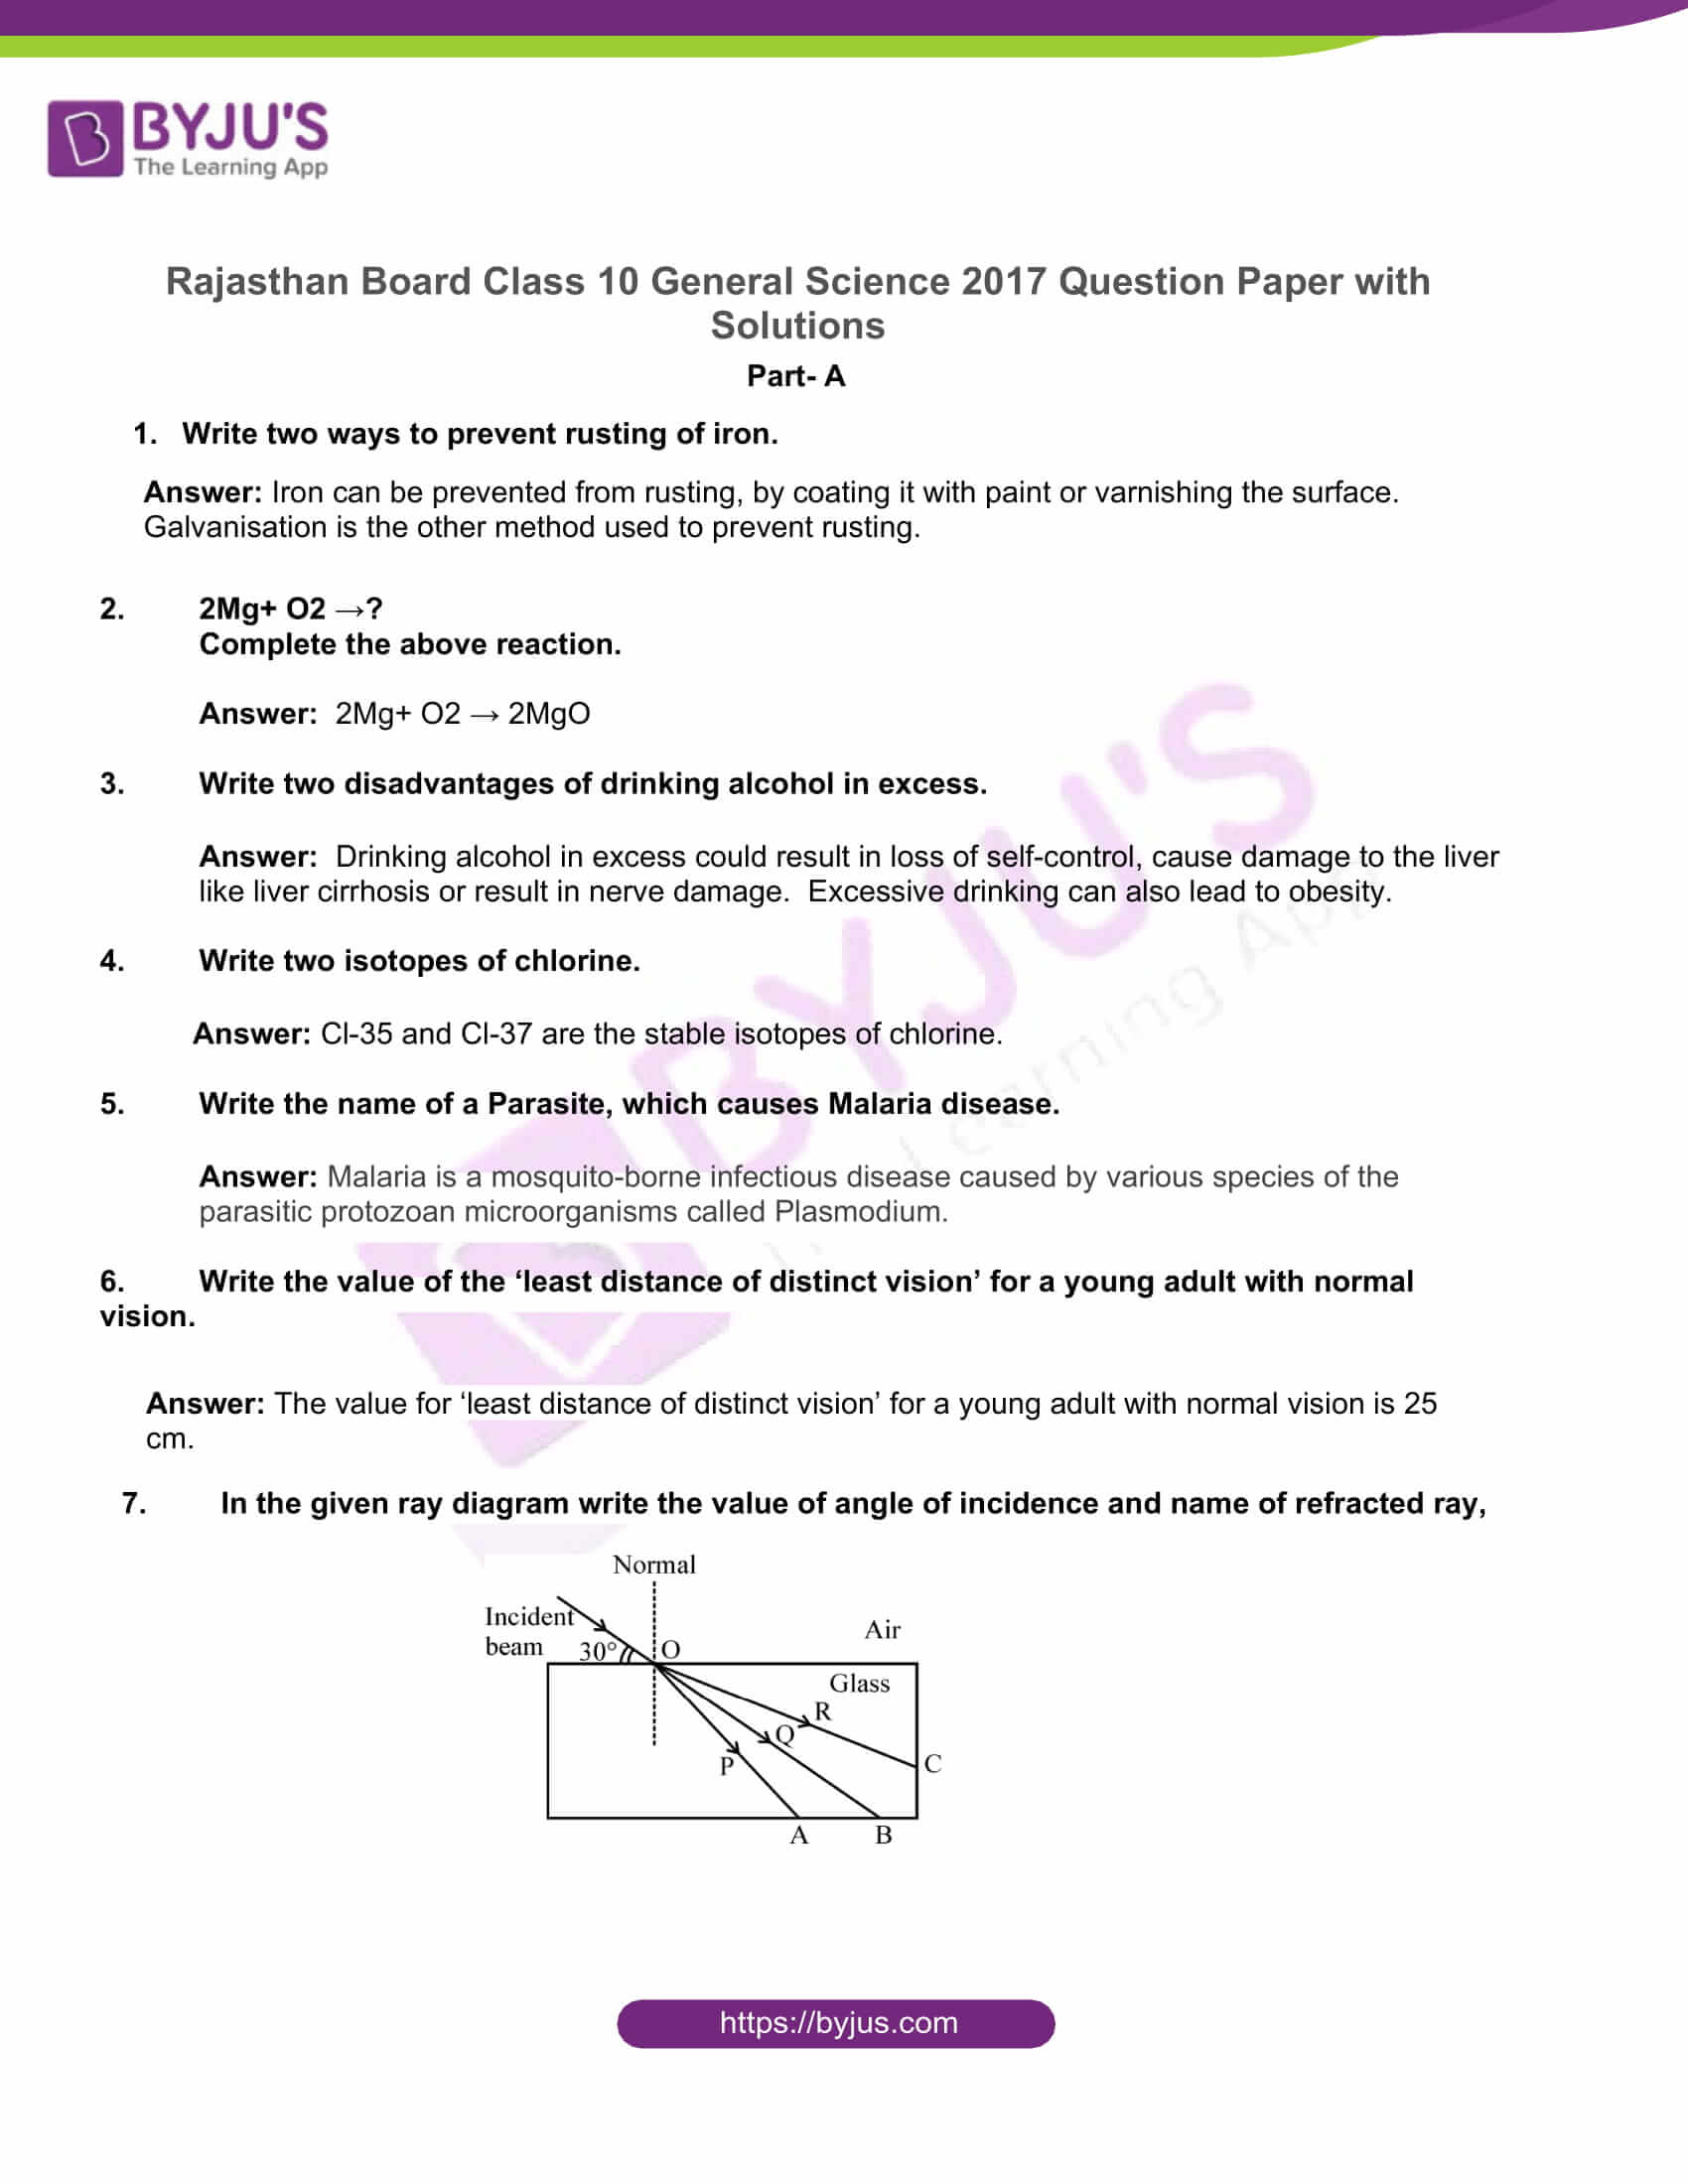 rajasthan board class 10 general science 2017 solutions 01